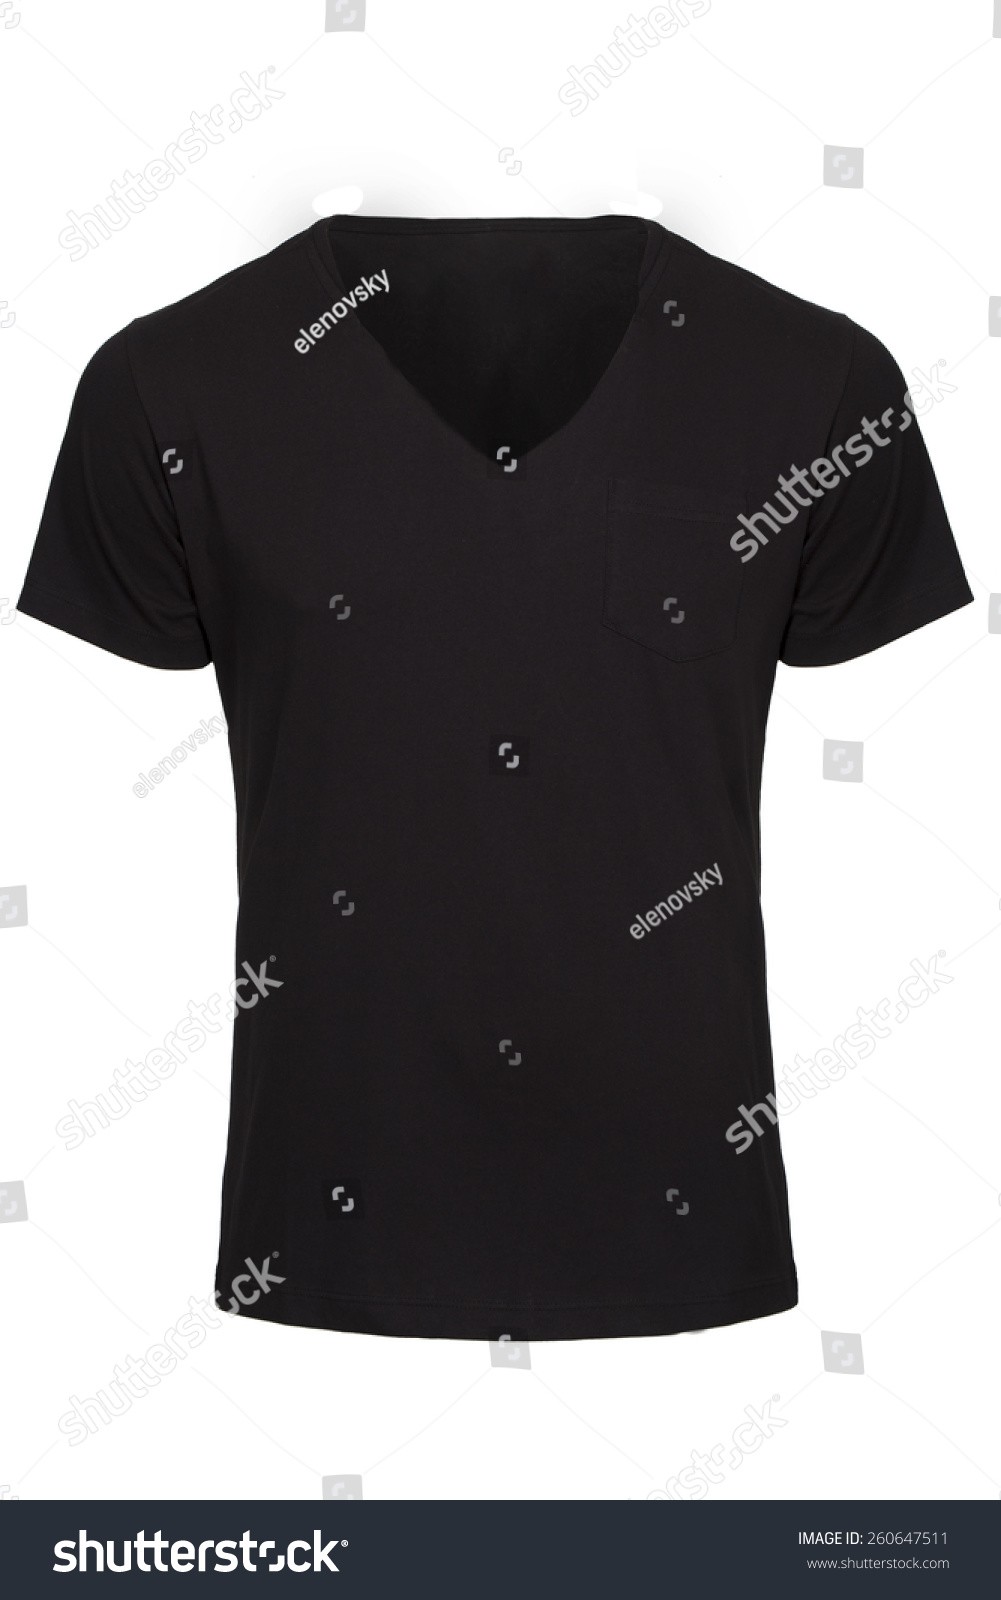 black v neck t shirt template - photo #33